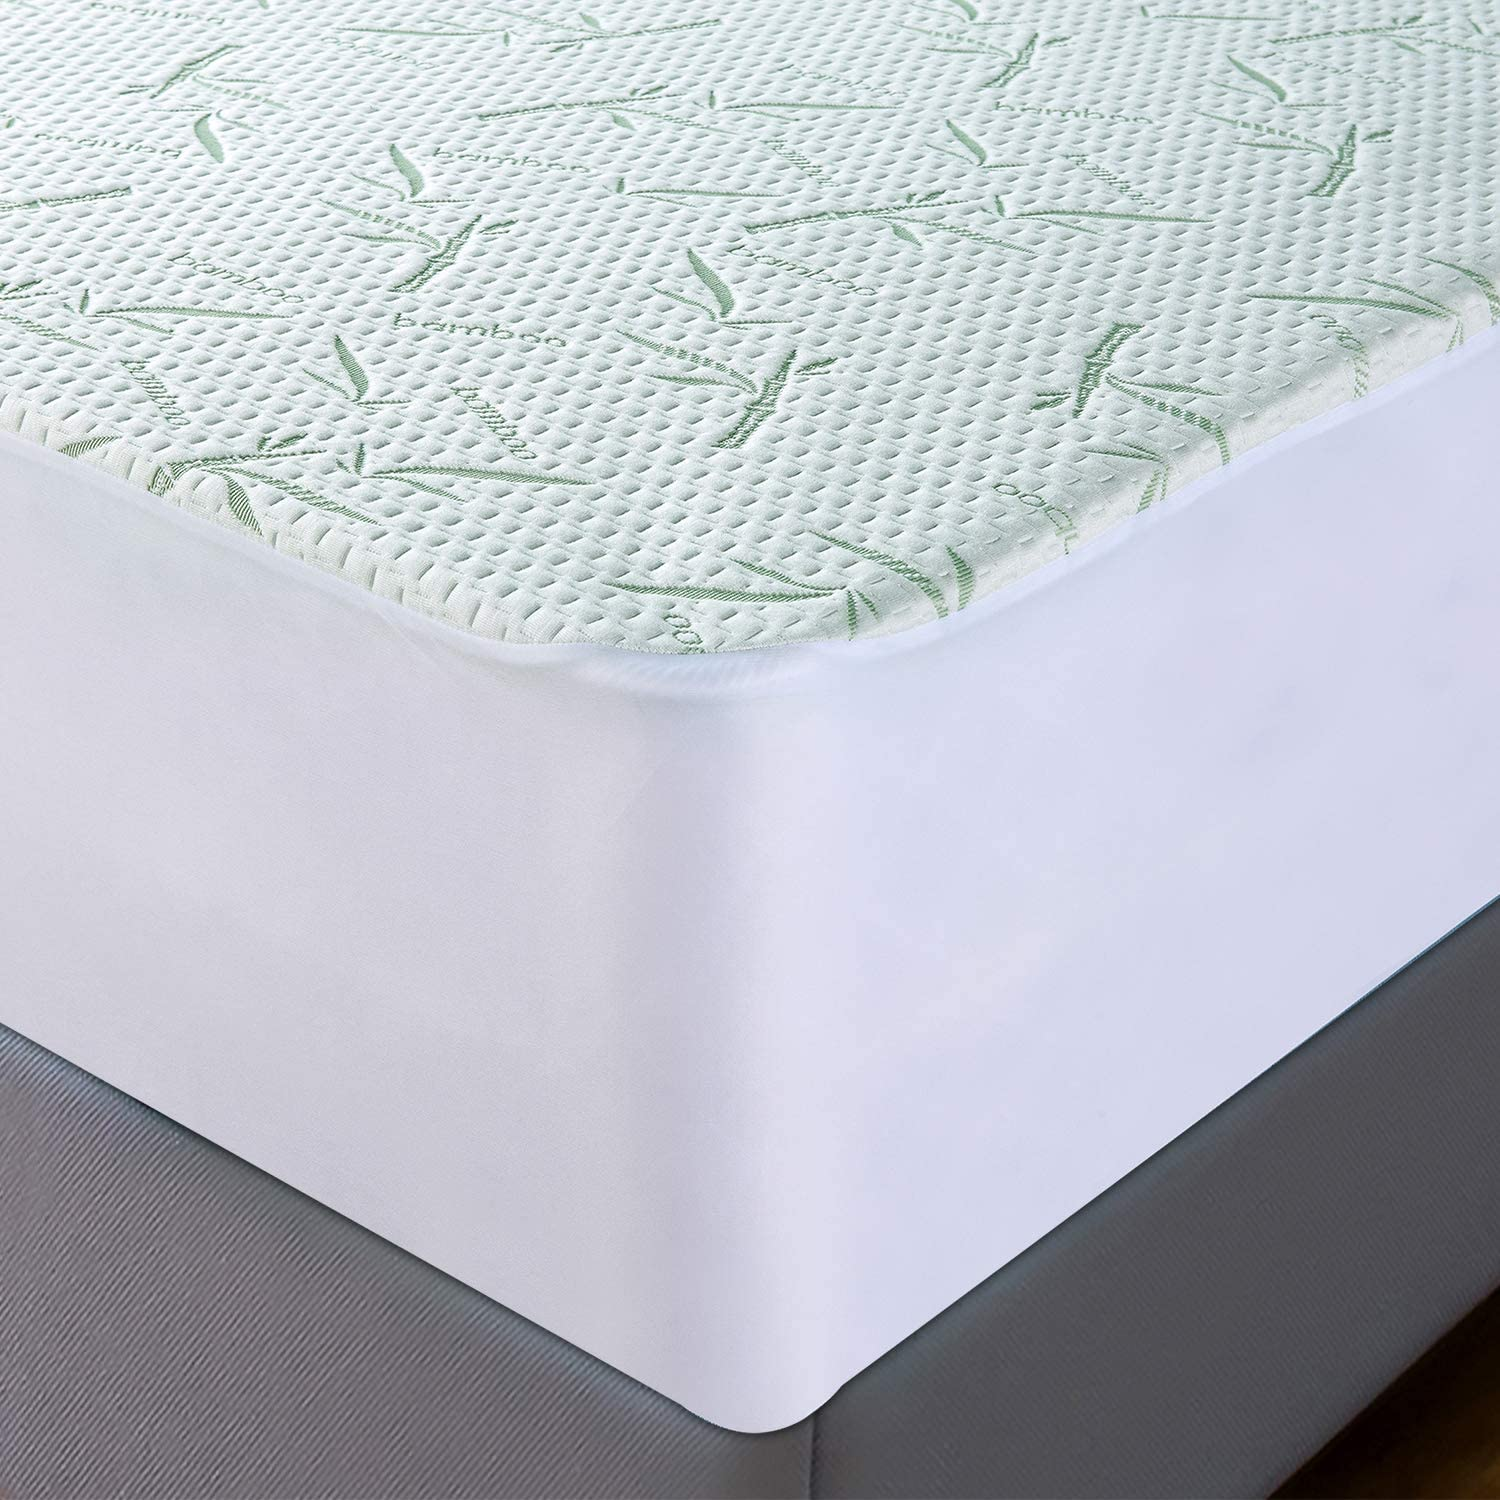 Utopia Bedding Bamboo Mattress Protector – Breathable and Waterproof Mattress Cover - Smooth Grip - Fits 17 Inches Deep - Easy Care (King): Home & Kitchen